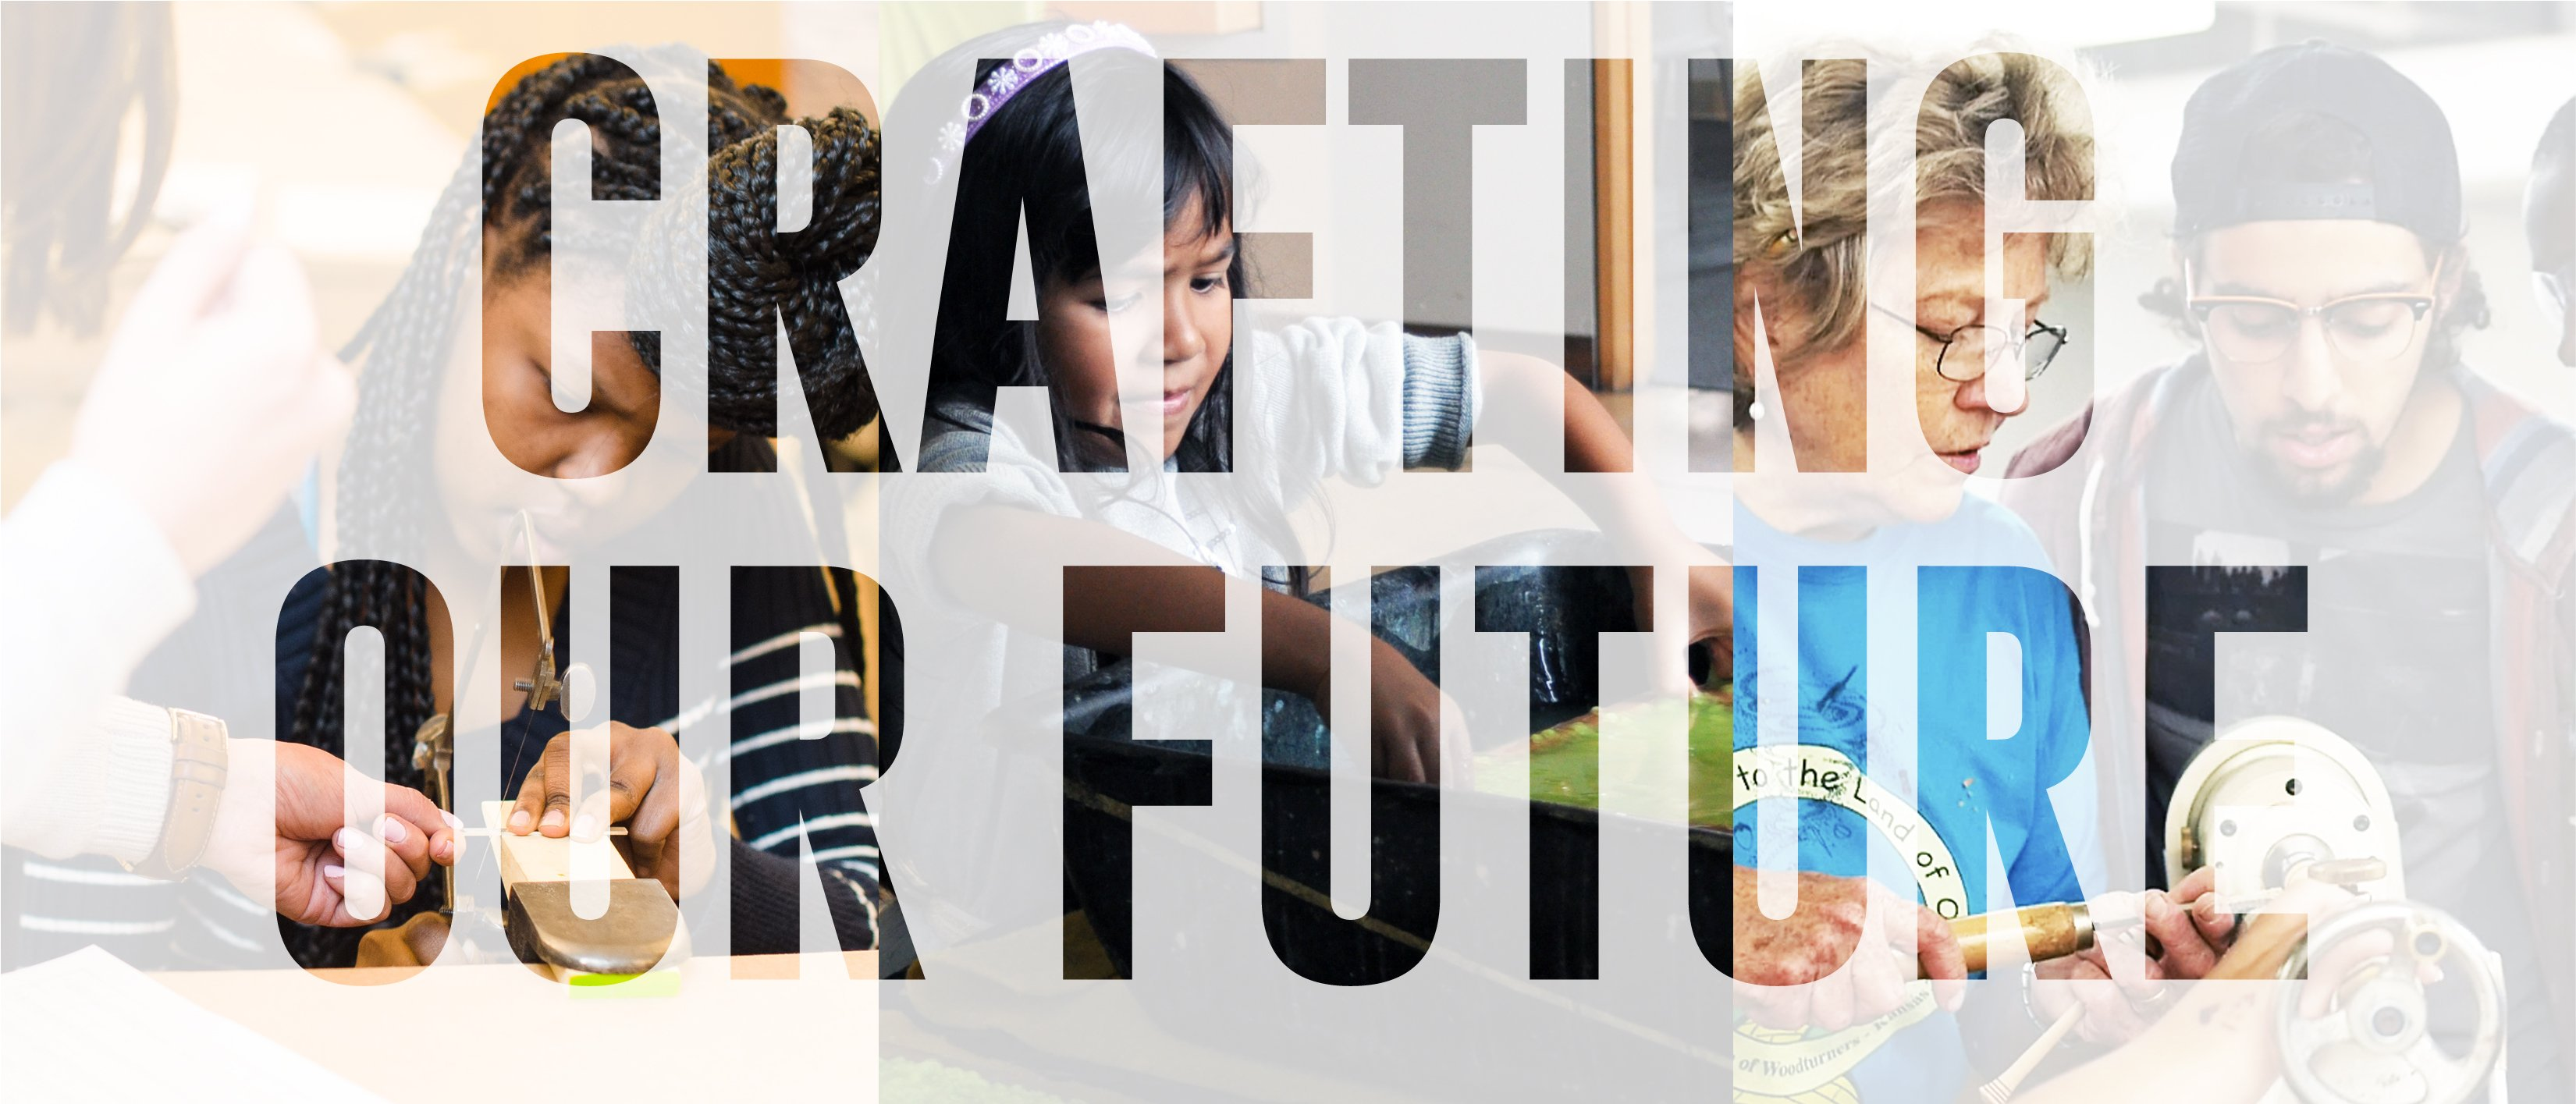 Crafting our future